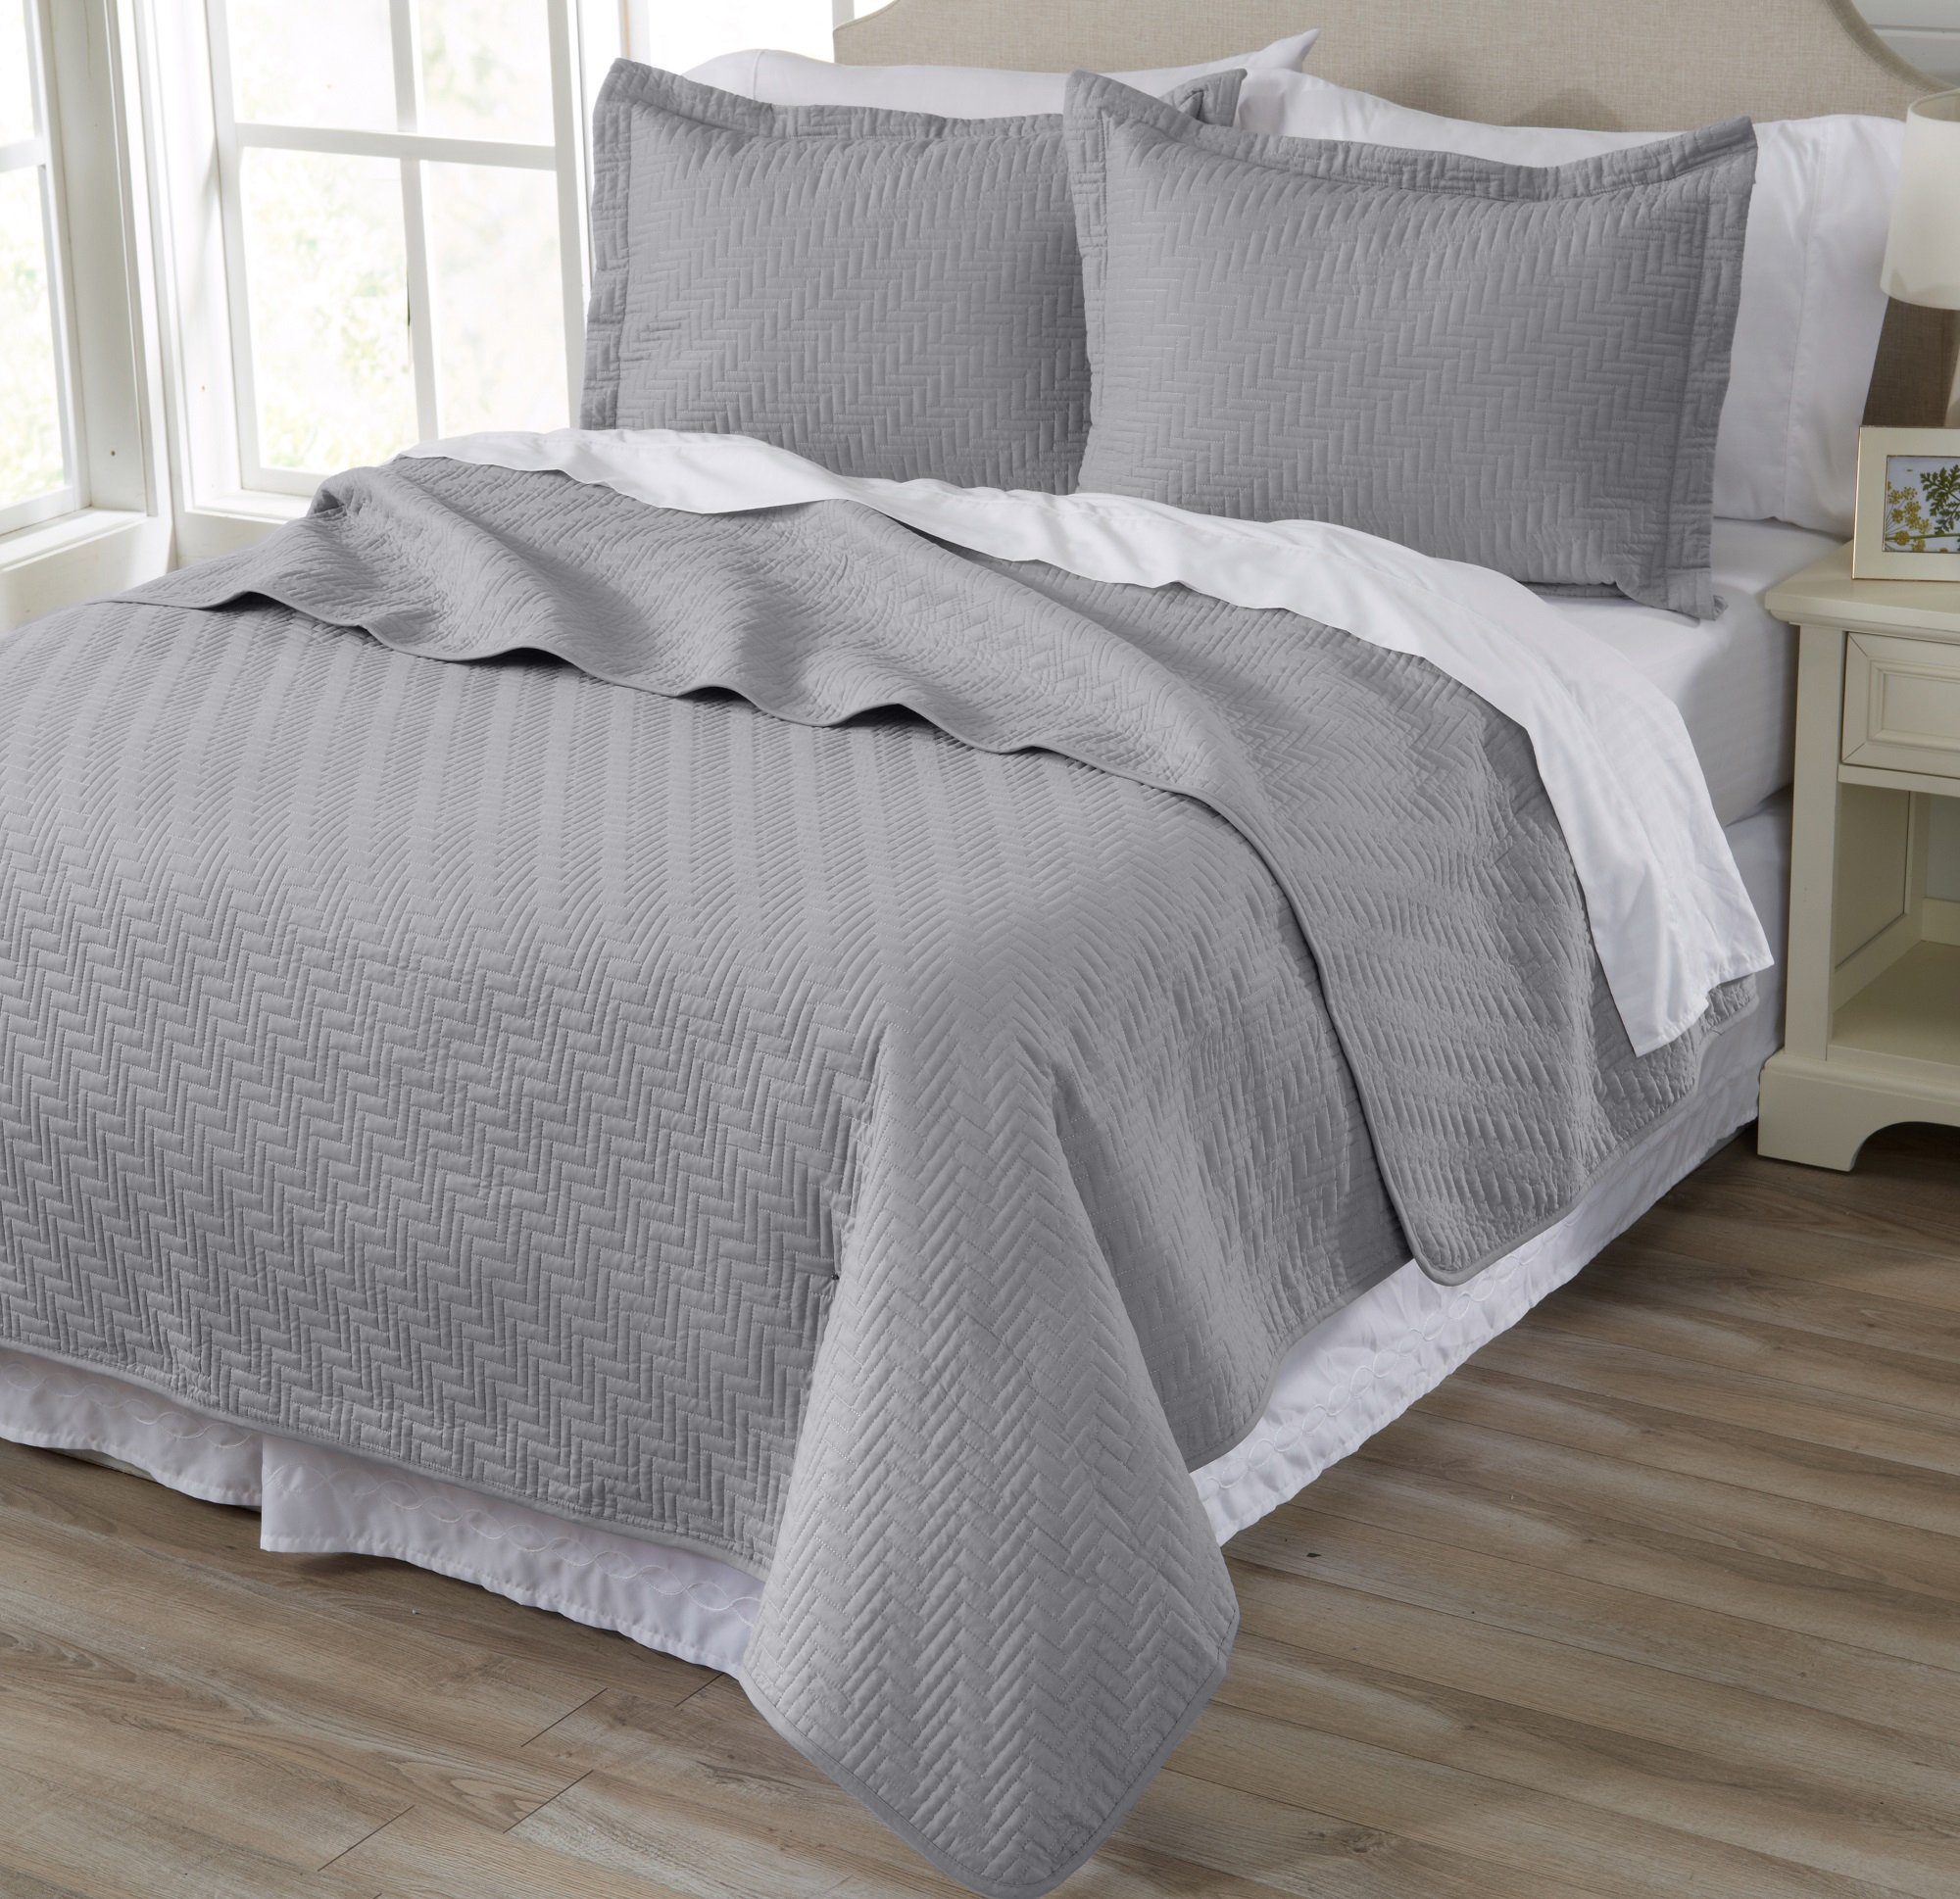 Home Fashion Designs Emerson Collection 3-Piece Luxury Quilt Set with Shams. Soft All-Season Microfiber Bedspread and Coverlet in Solid Colors. By Brand. (Full/Queen, Pewter)